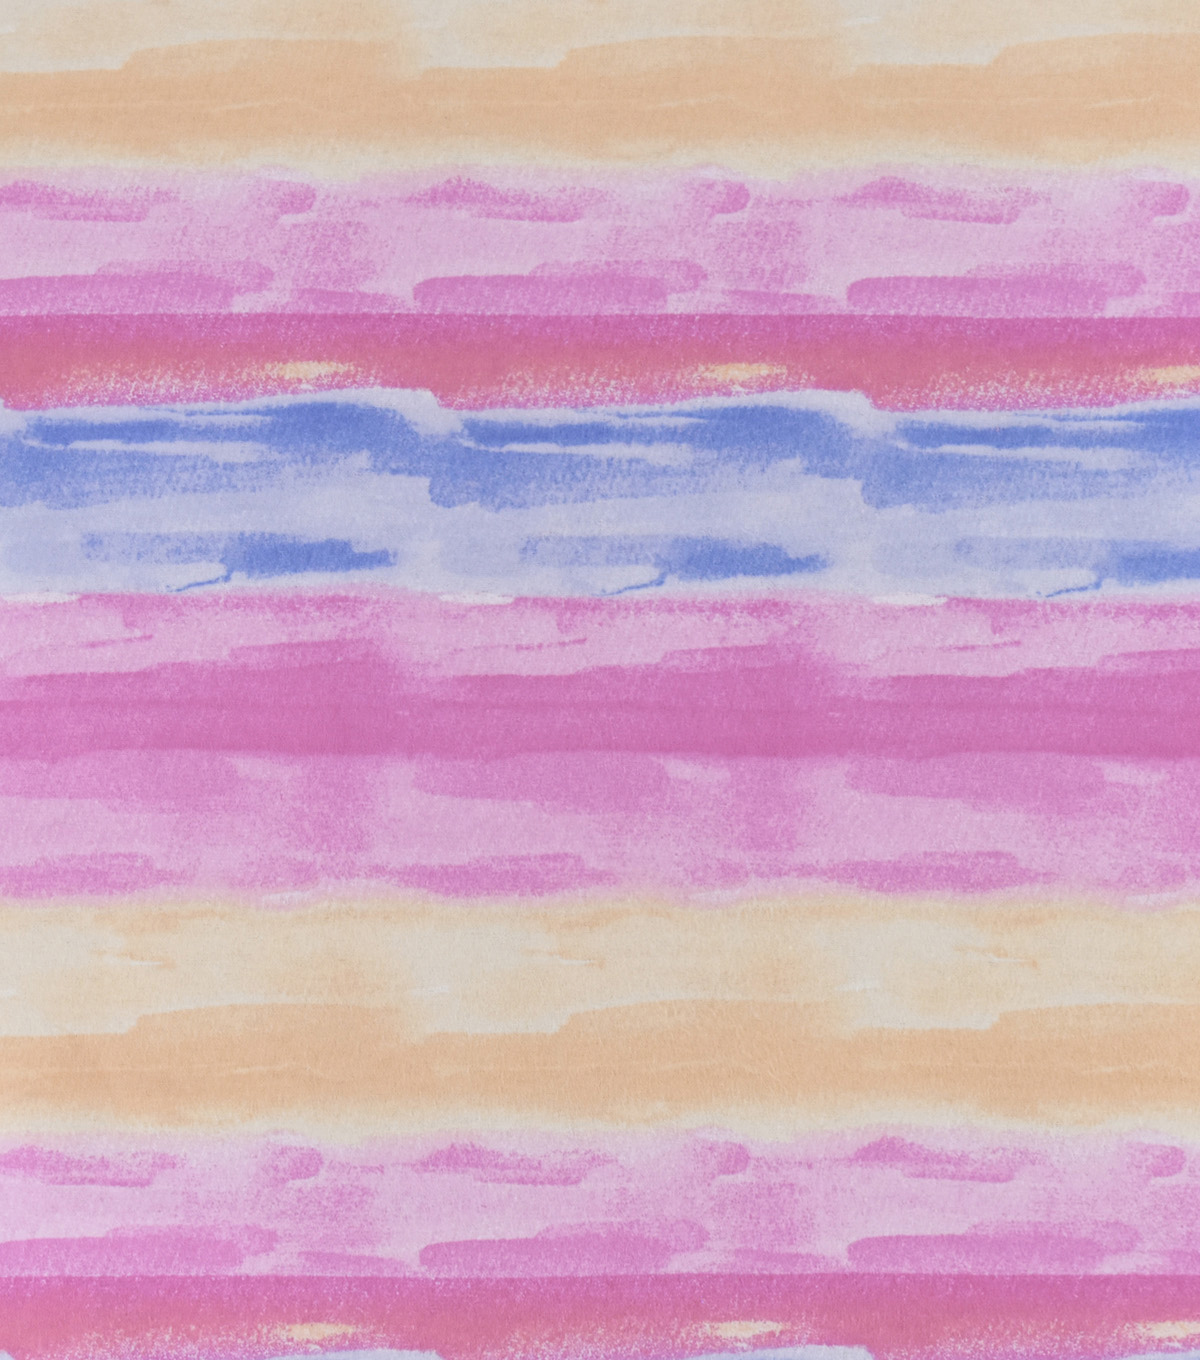 Snuggle Flannel Fabric-Purple Pink Orange Watercolor Tie Dye